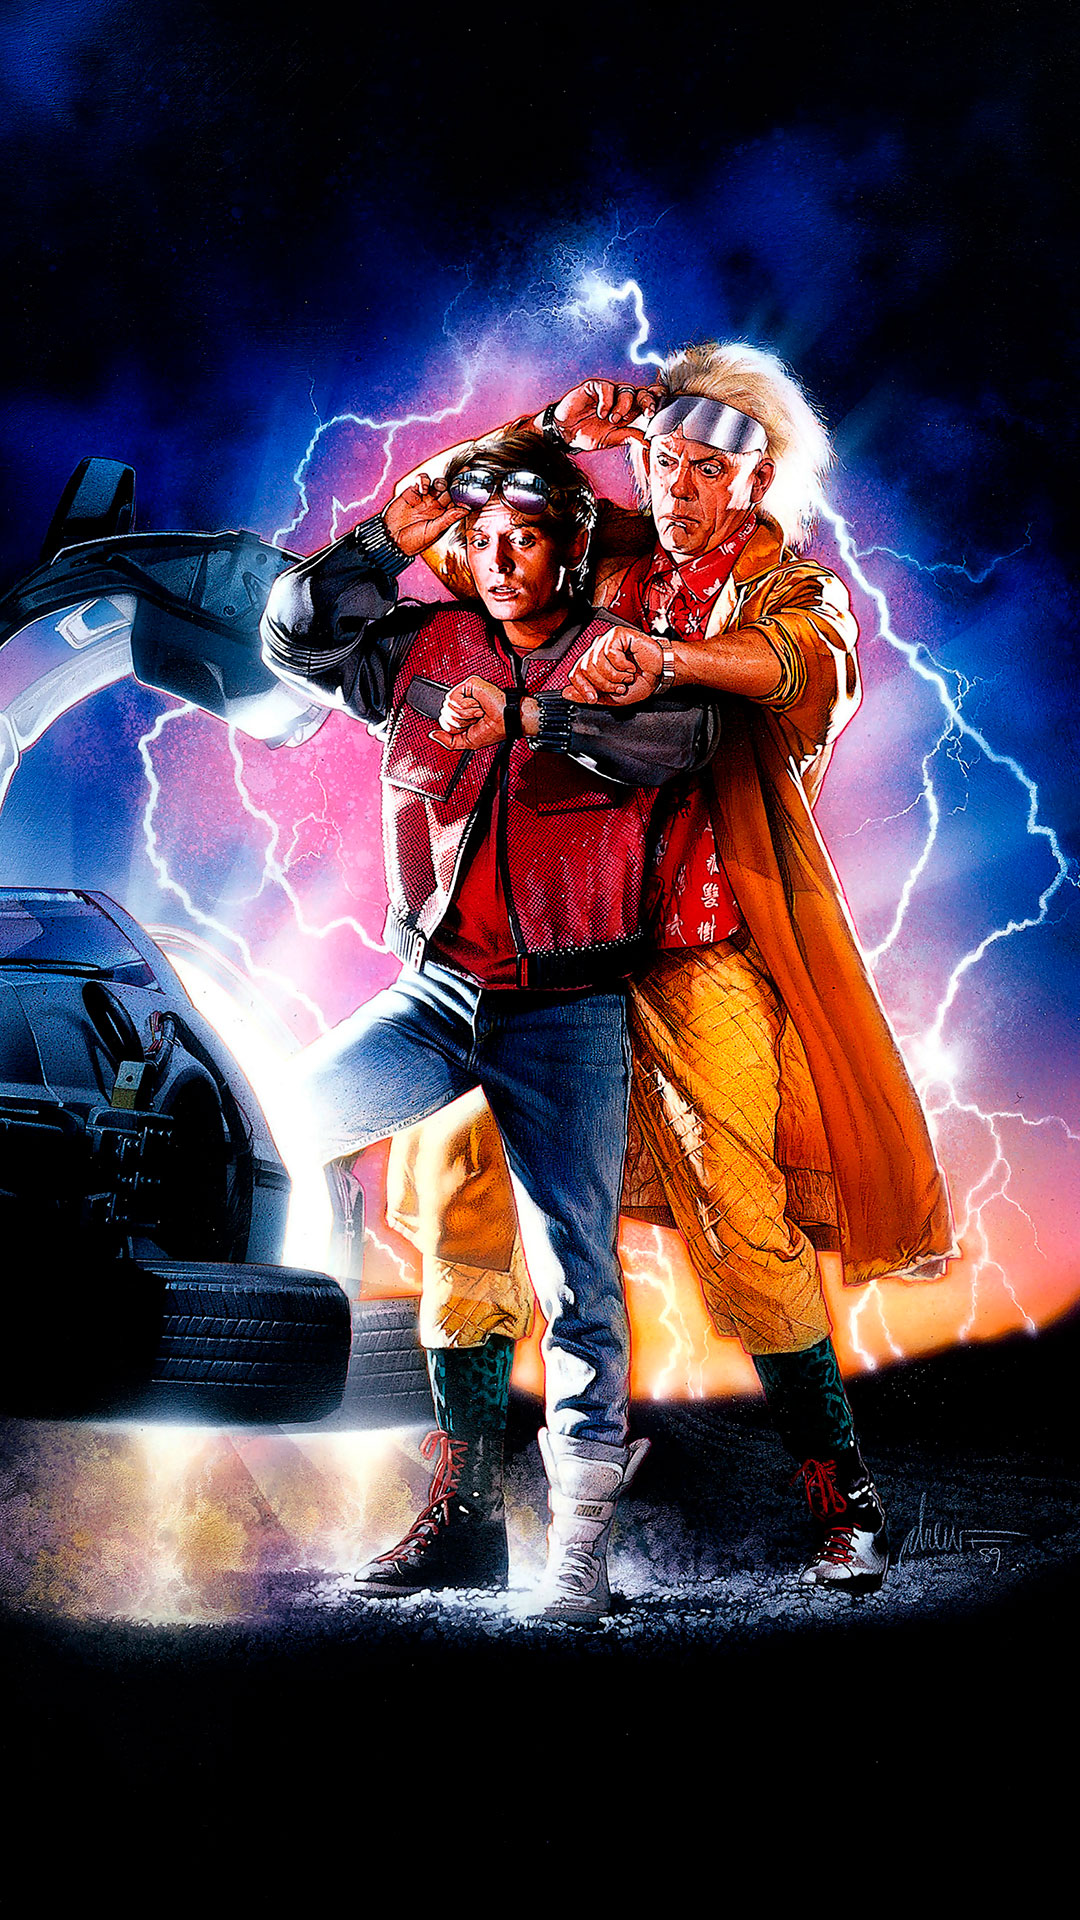 iPhone wallpaper back to the future doc marty Fonds d'écran iPhone du 04/05/2018